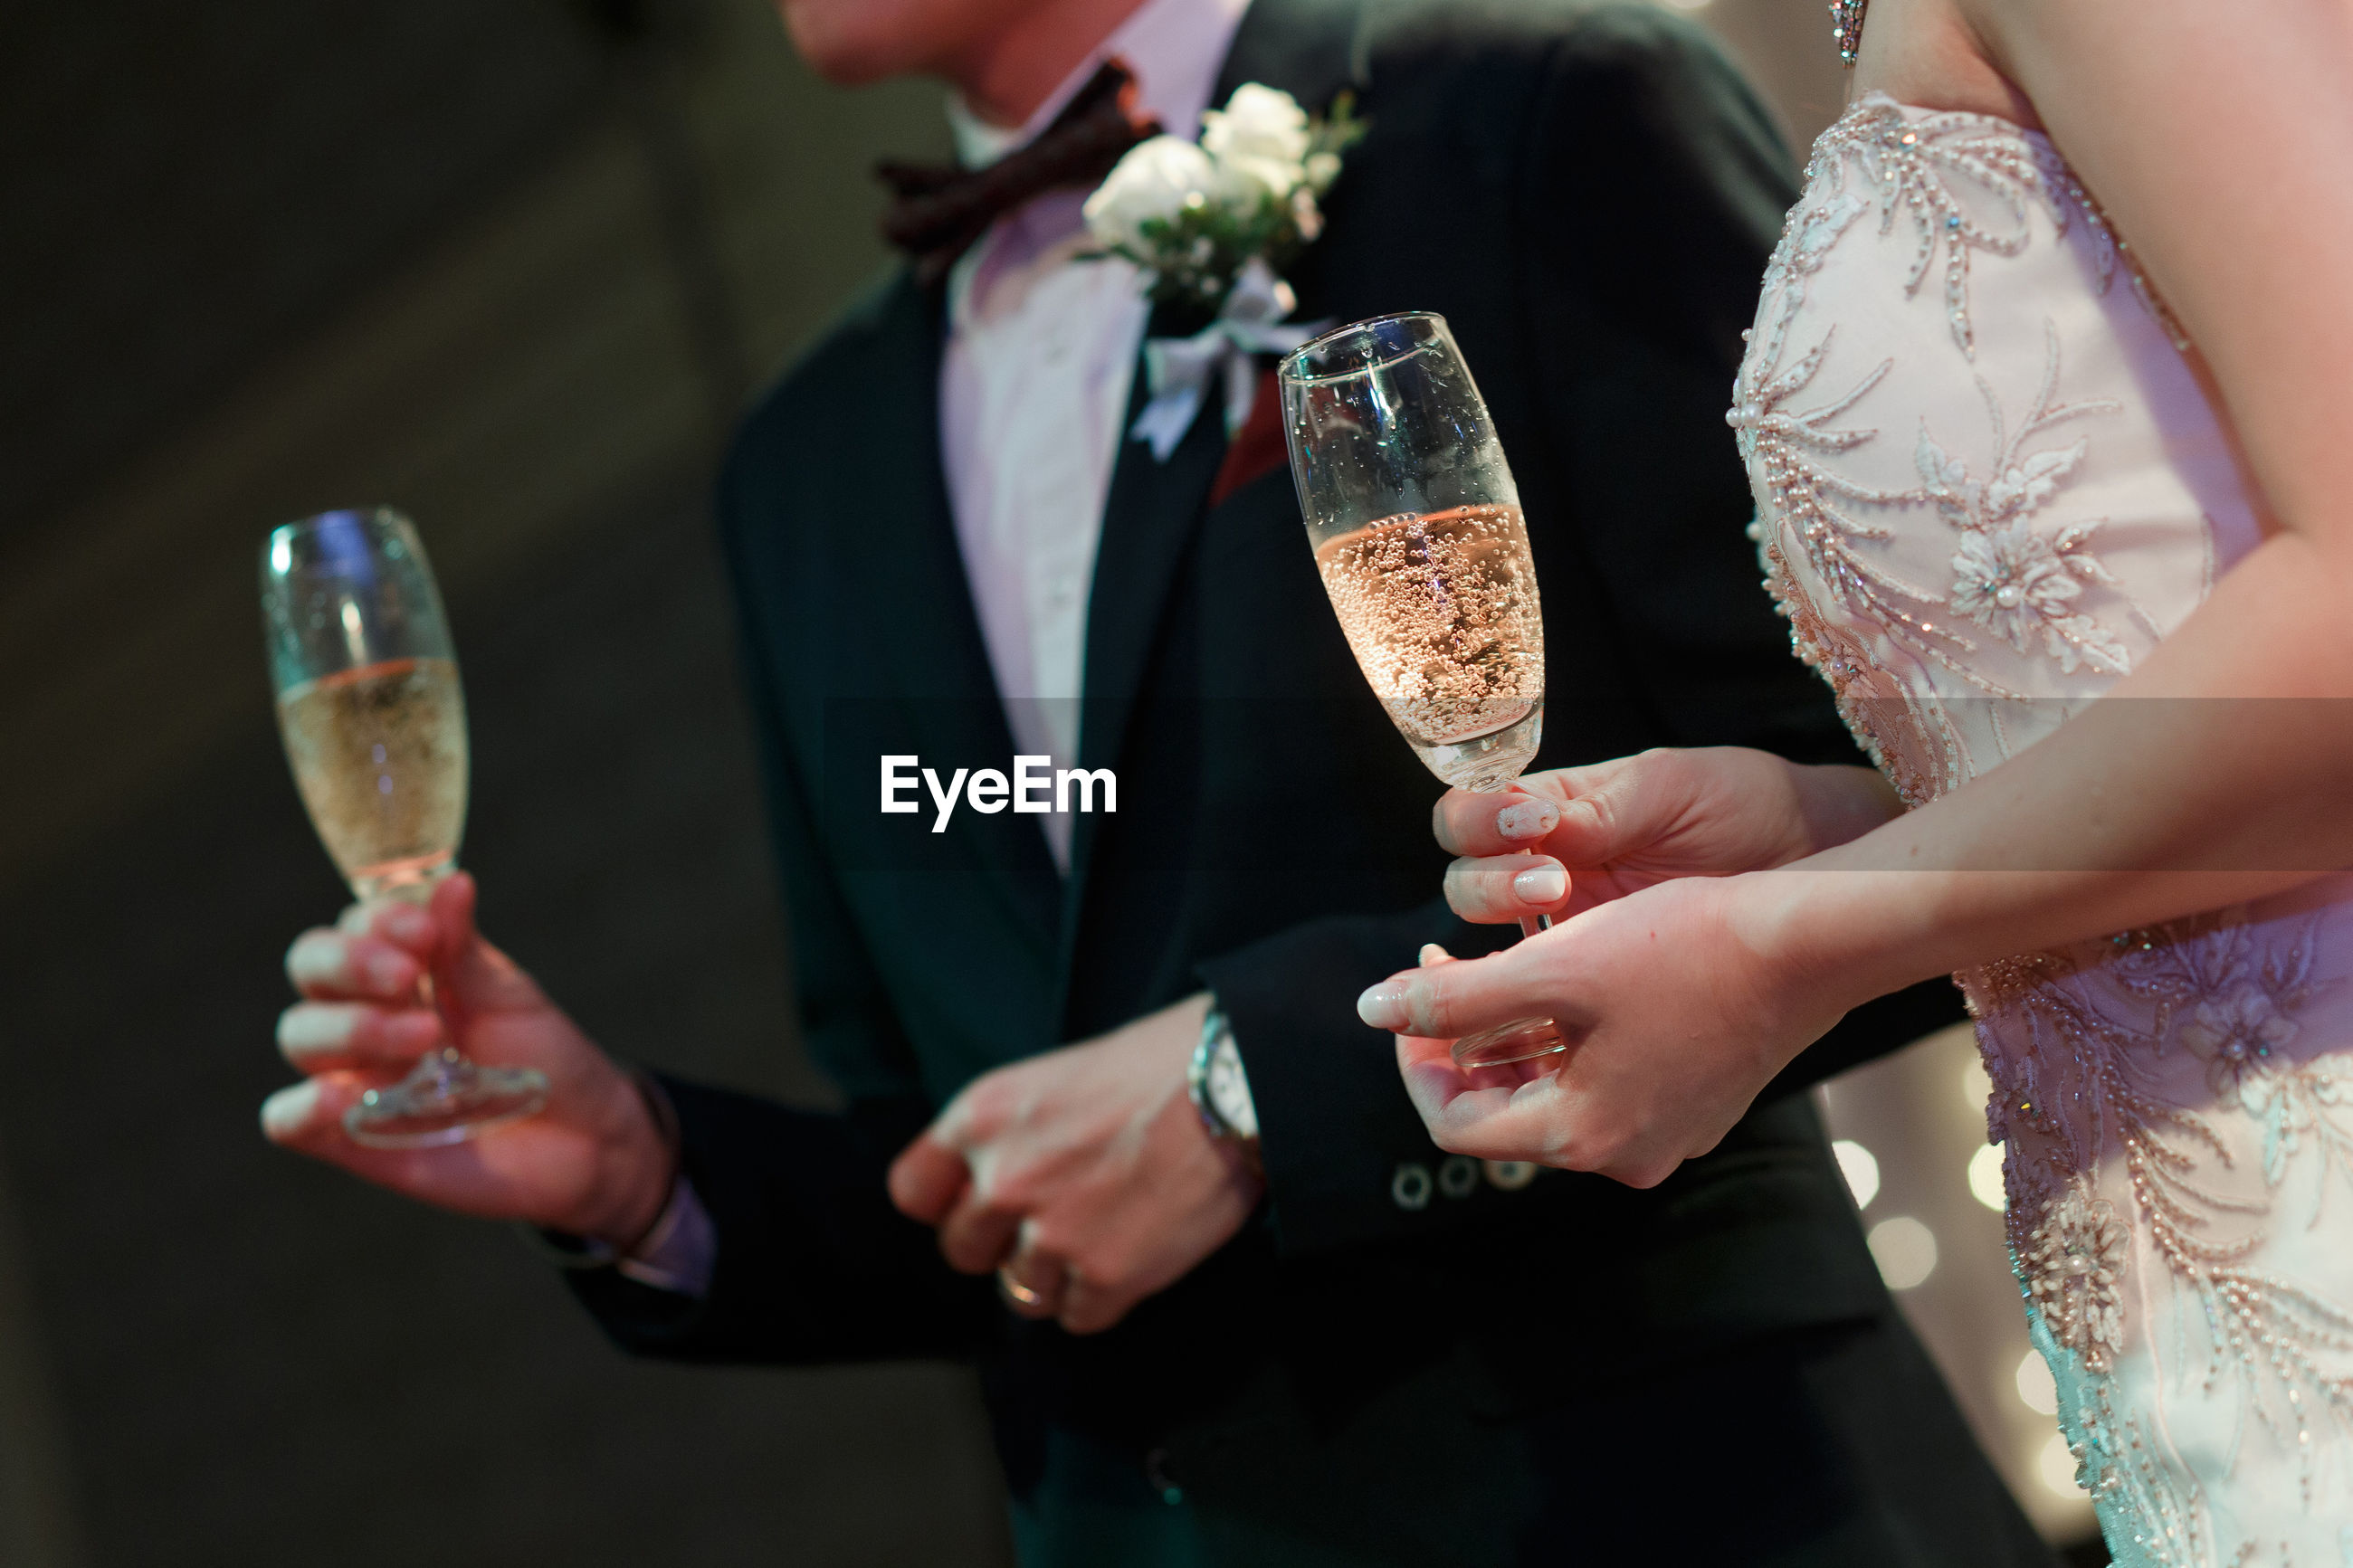 Midsection of bride and bridegroom having champagne during wedding ceremony